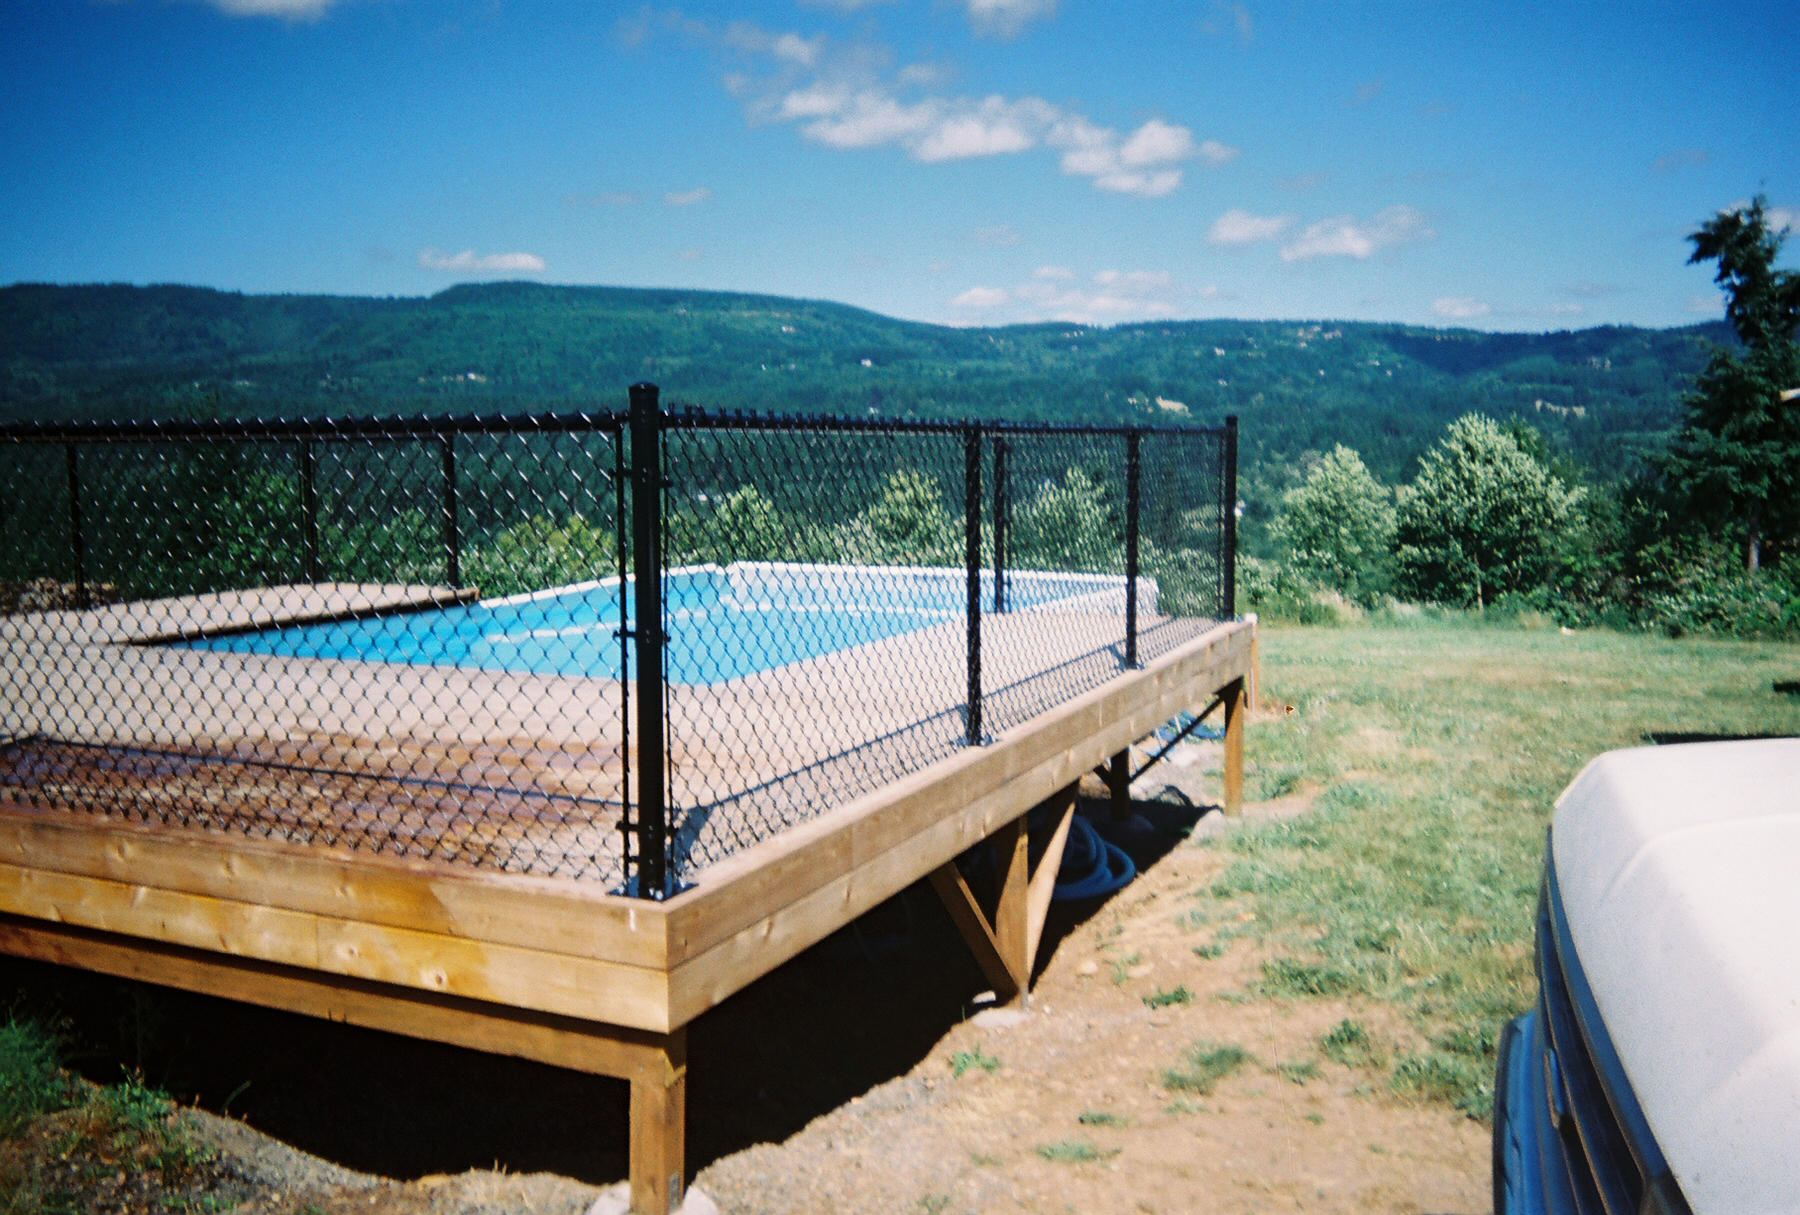 Black Vinyl chain link fence with flange post adds safety without obstructing your view. Contact Vancouver Washington's Best Fence Builders. The Fenceman Fence Company installs wood, vinyl, chain link and ornamental iron fences. We also offer materials for the do it yourselfer.